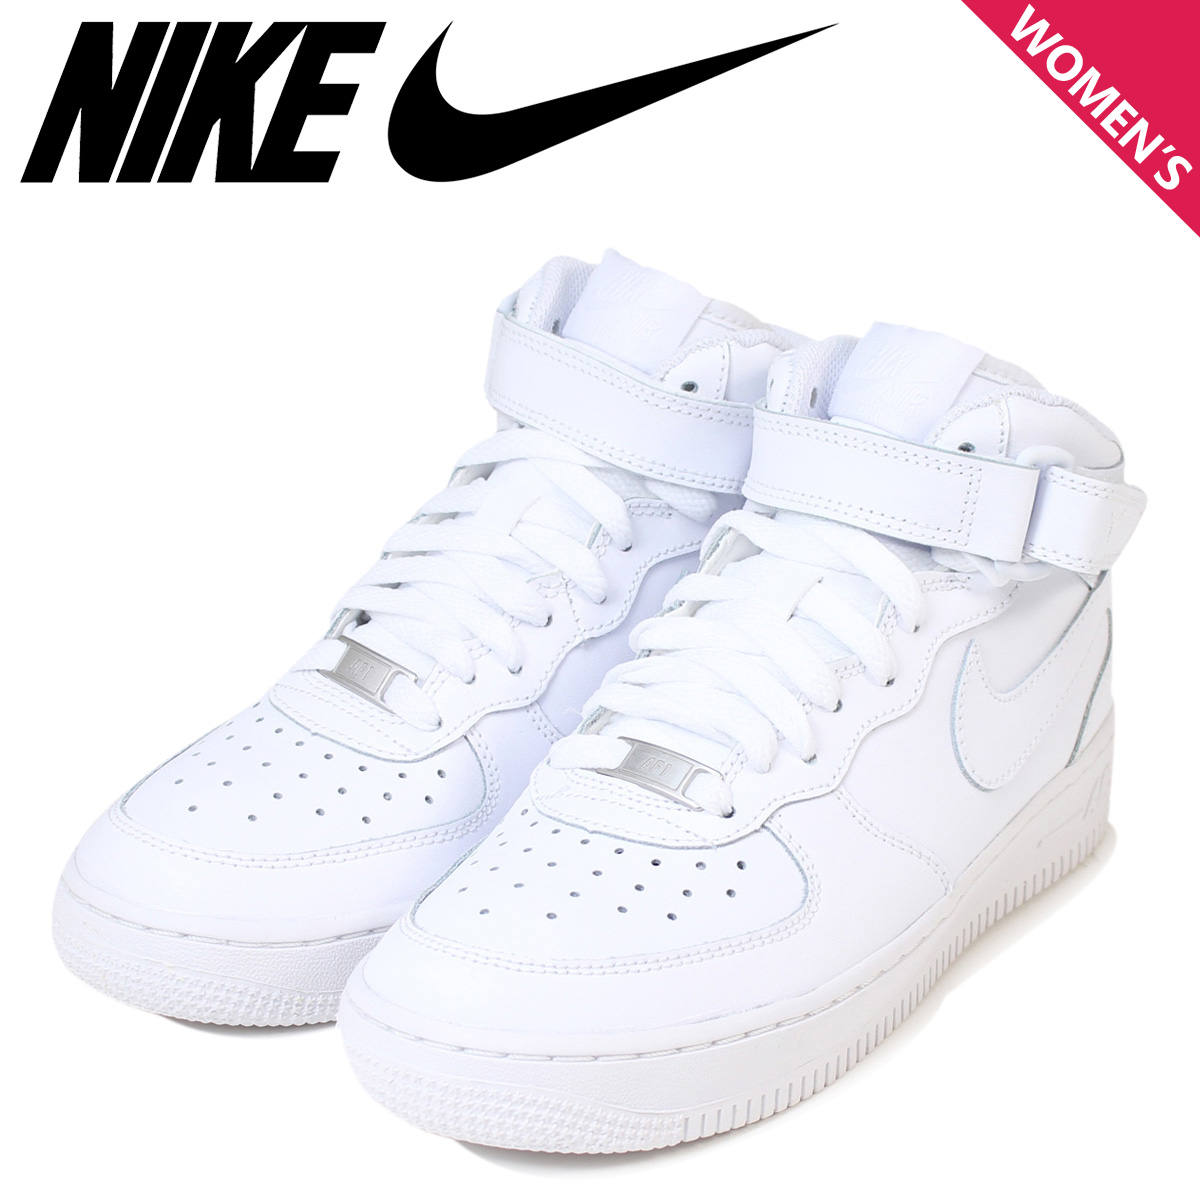 f85962d3 «Reservation products» «1 / 24 around stock» Nike NIKE Womens AIR FORCE 1  MID GIRLS 314195-113 sneaker air force 1 mid girls leather junior kids  children ...